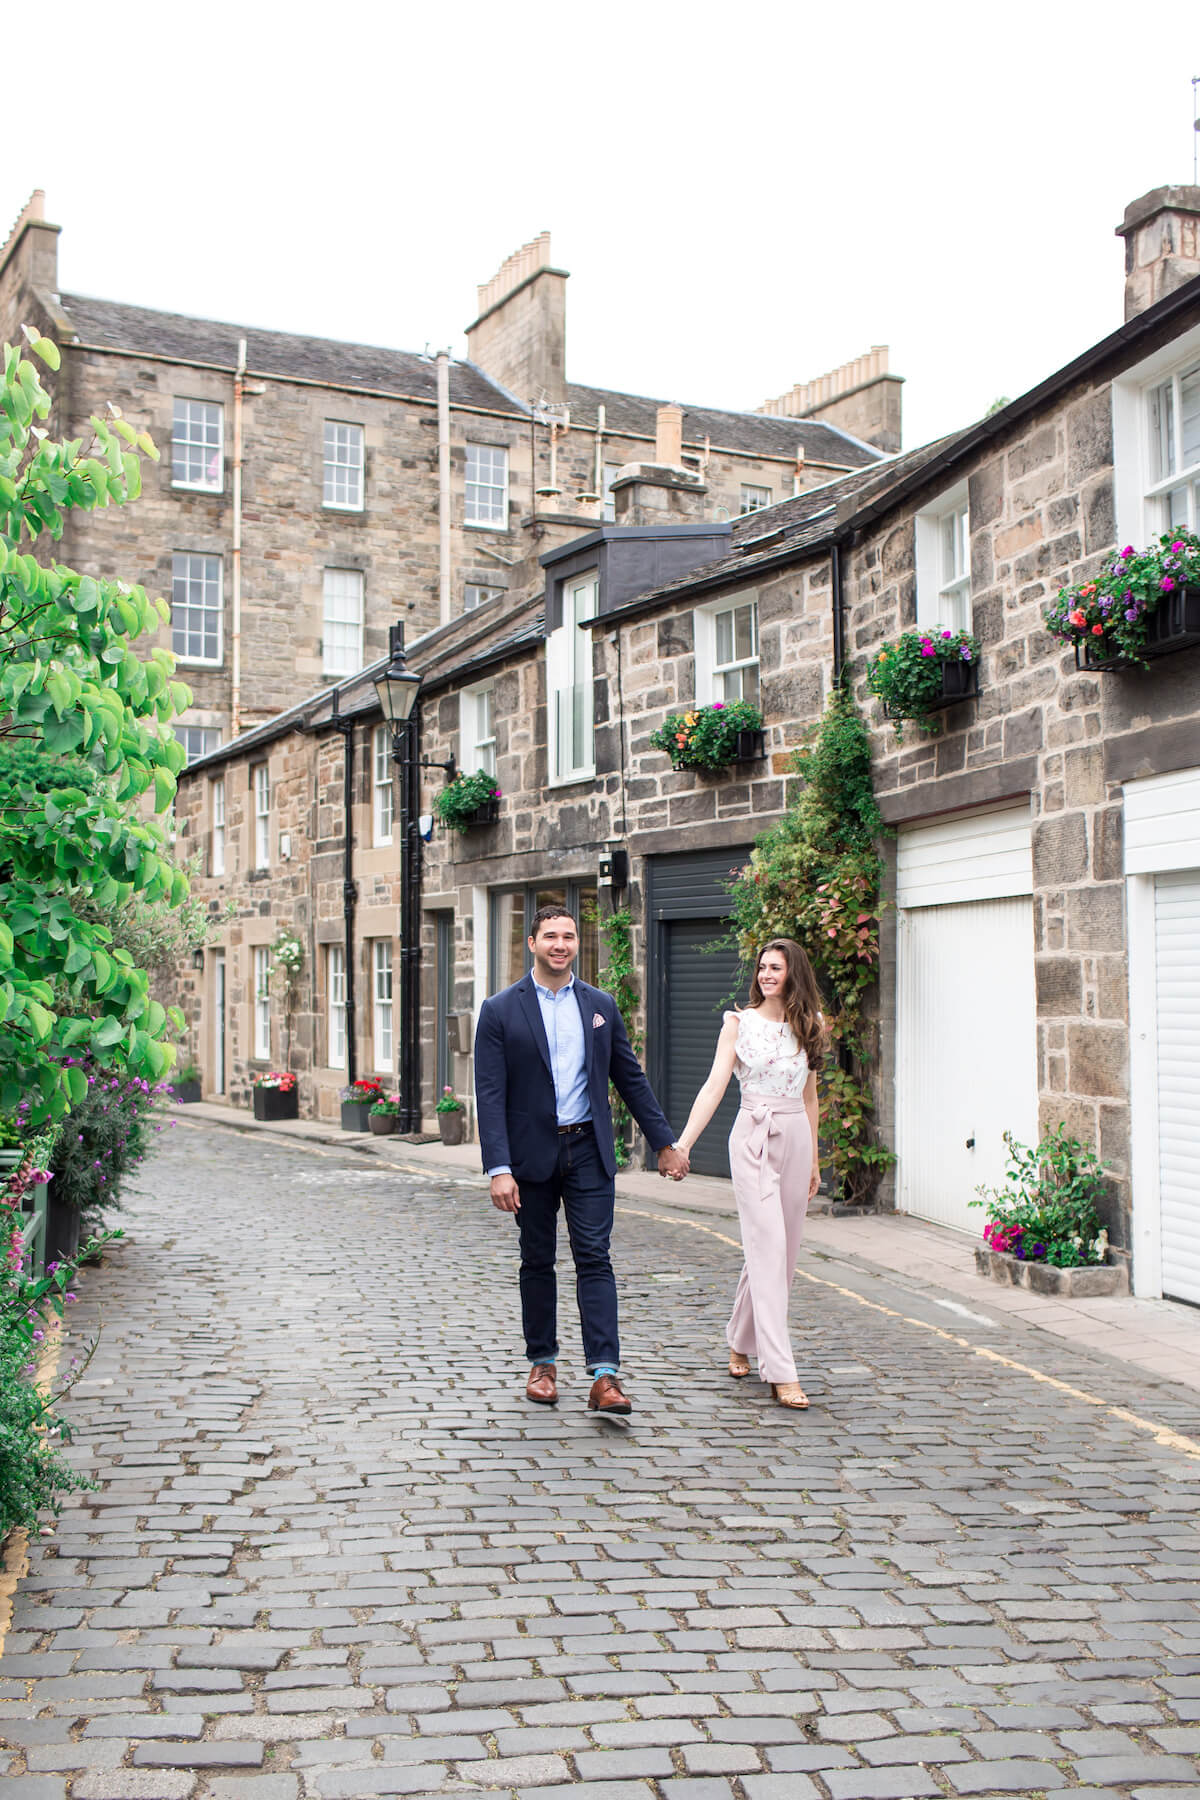 A well-dressed couple hold hands while walking along a picturesque street in Edinburgh, Scotland.